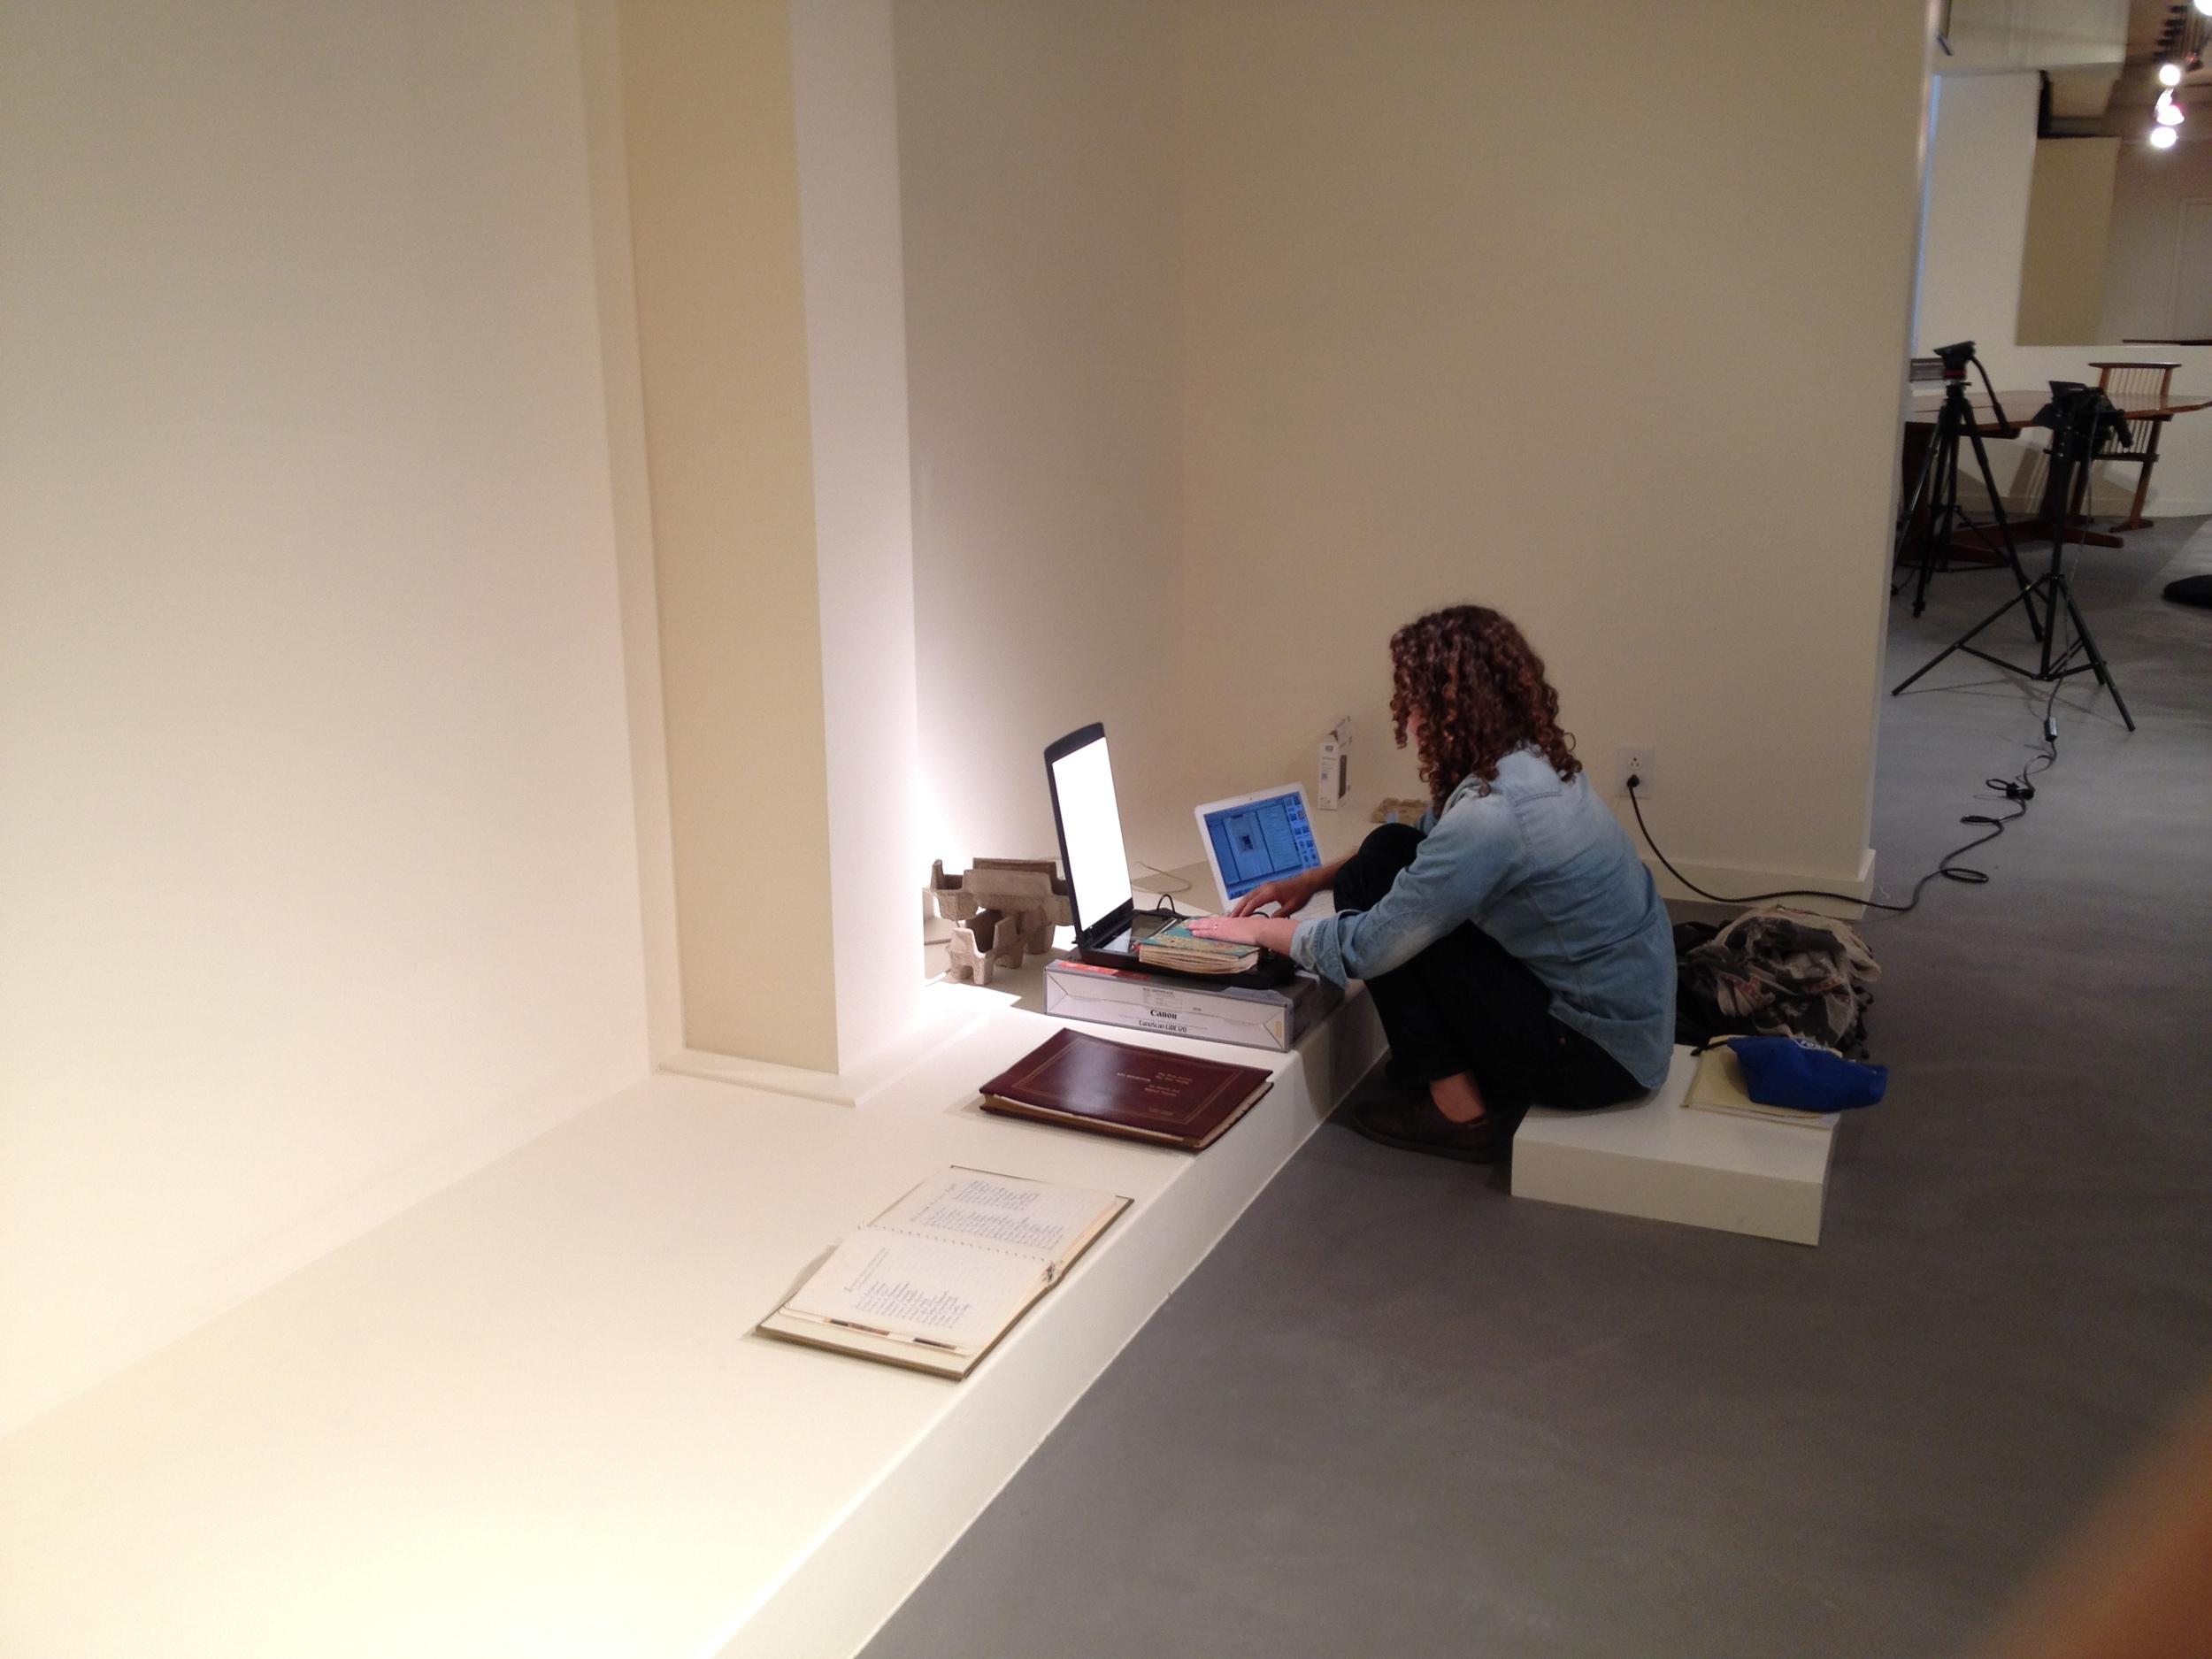 Scanning Photos at Moderne Gallery, Philadelphia